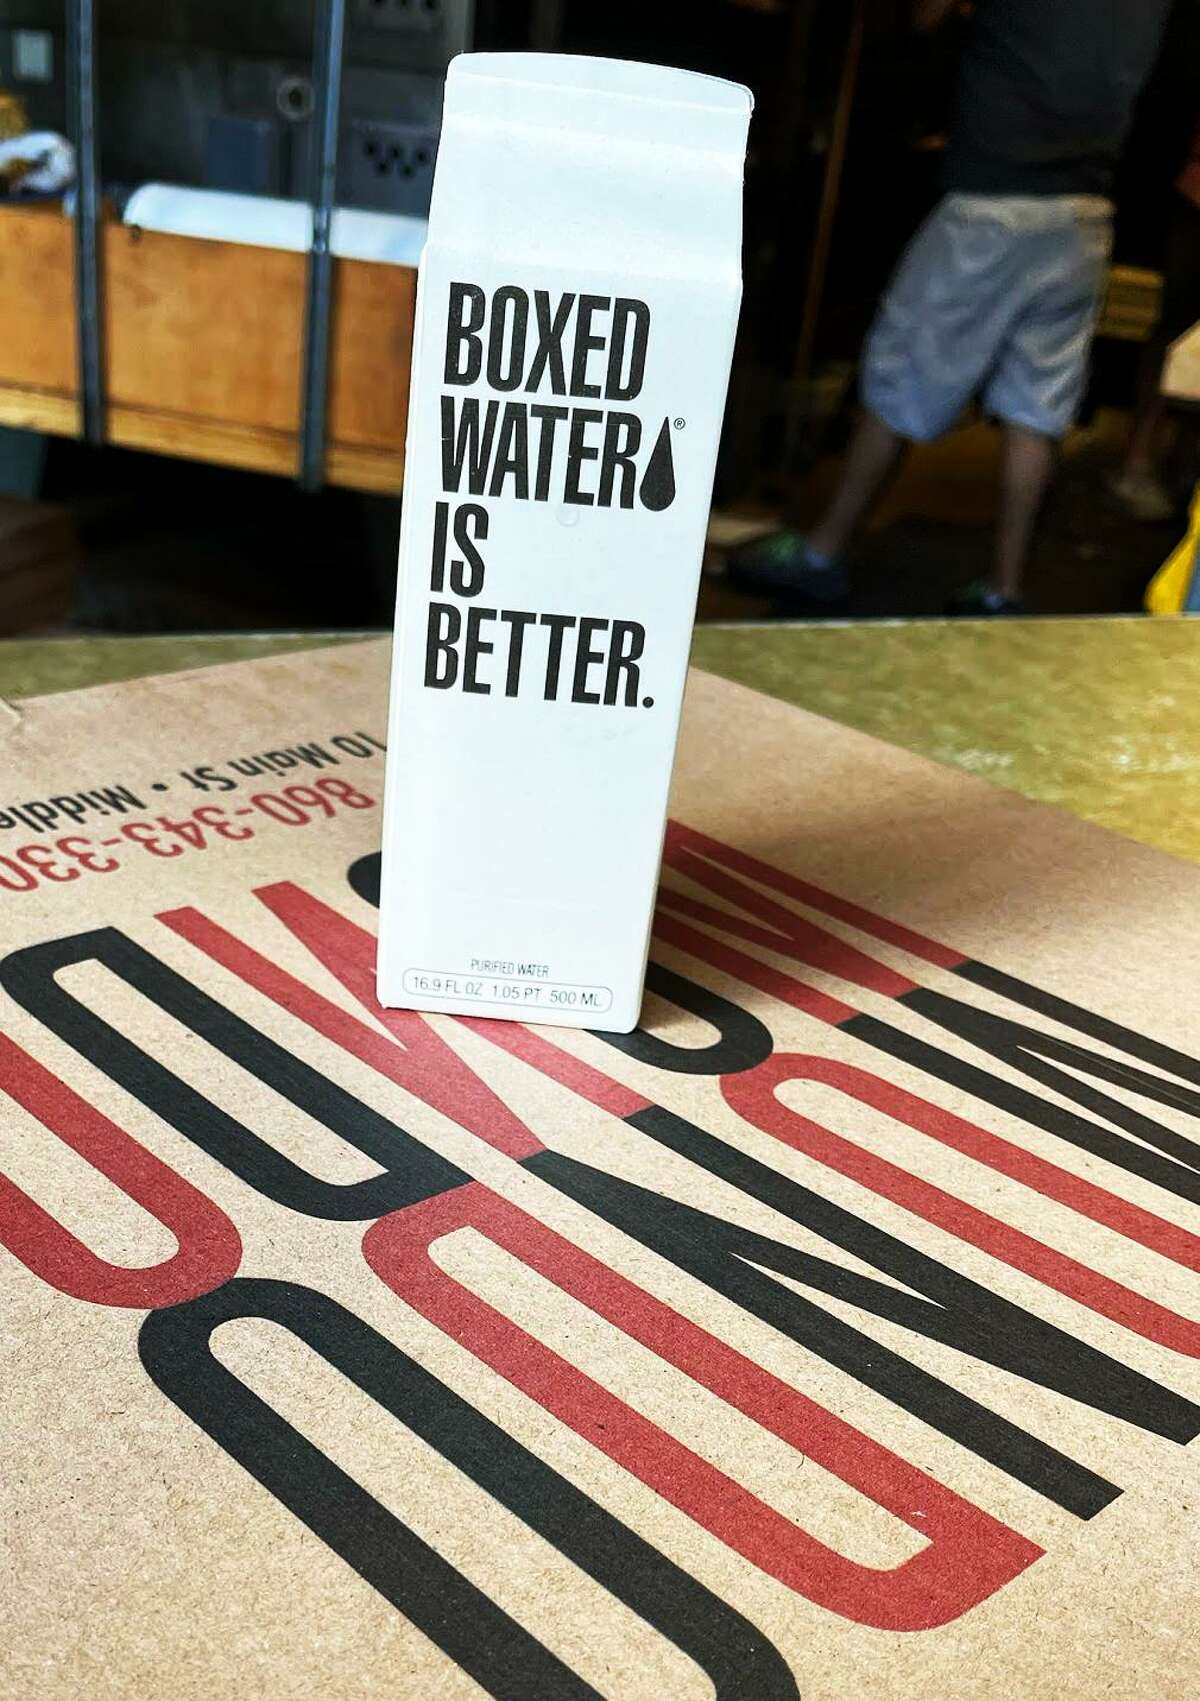 Mondo Pizza, on Main Street in Middletown, has replaced single-use plastic water bottles with water in cartons.